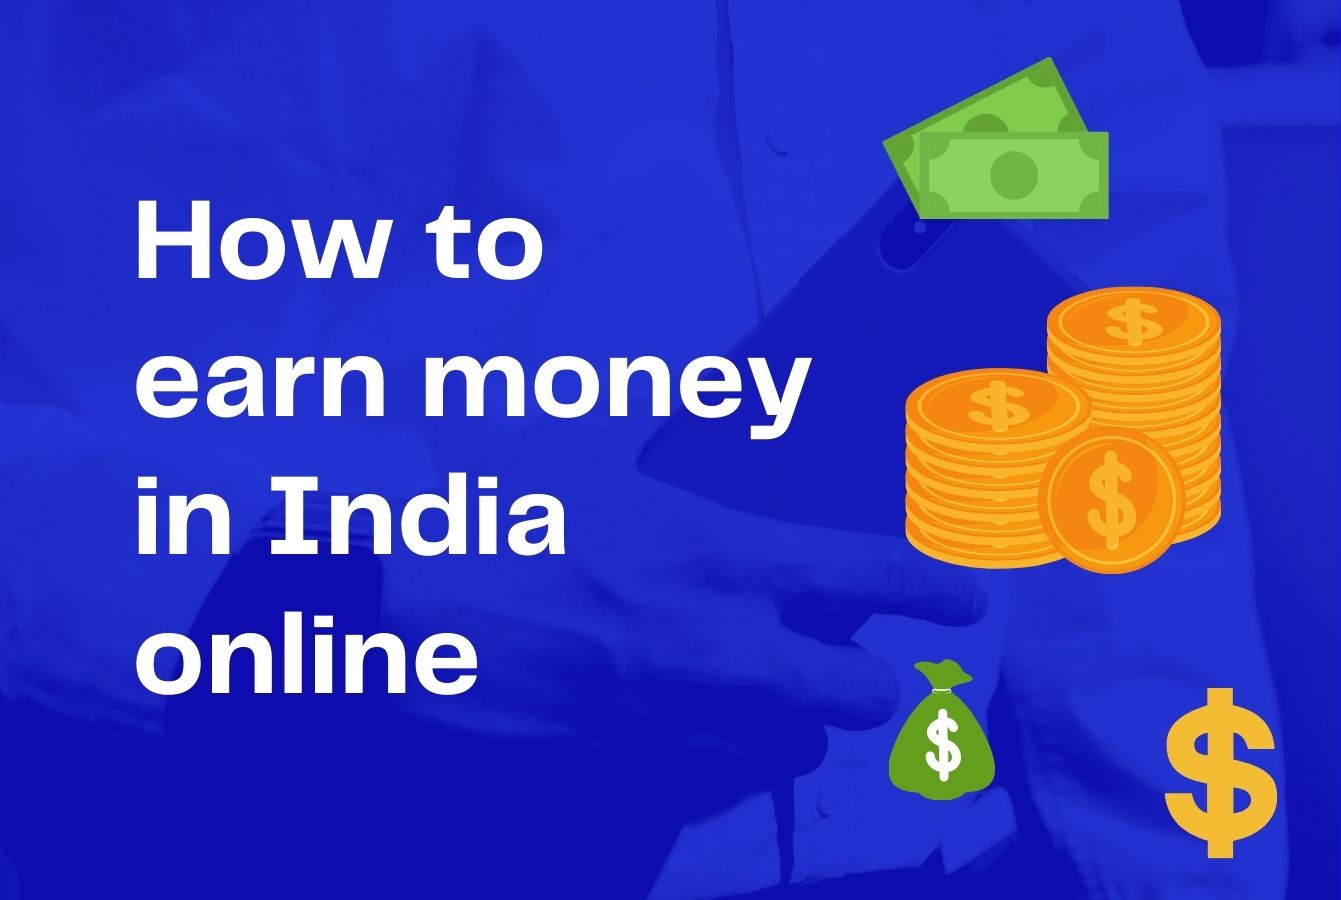 How to earn money in India online